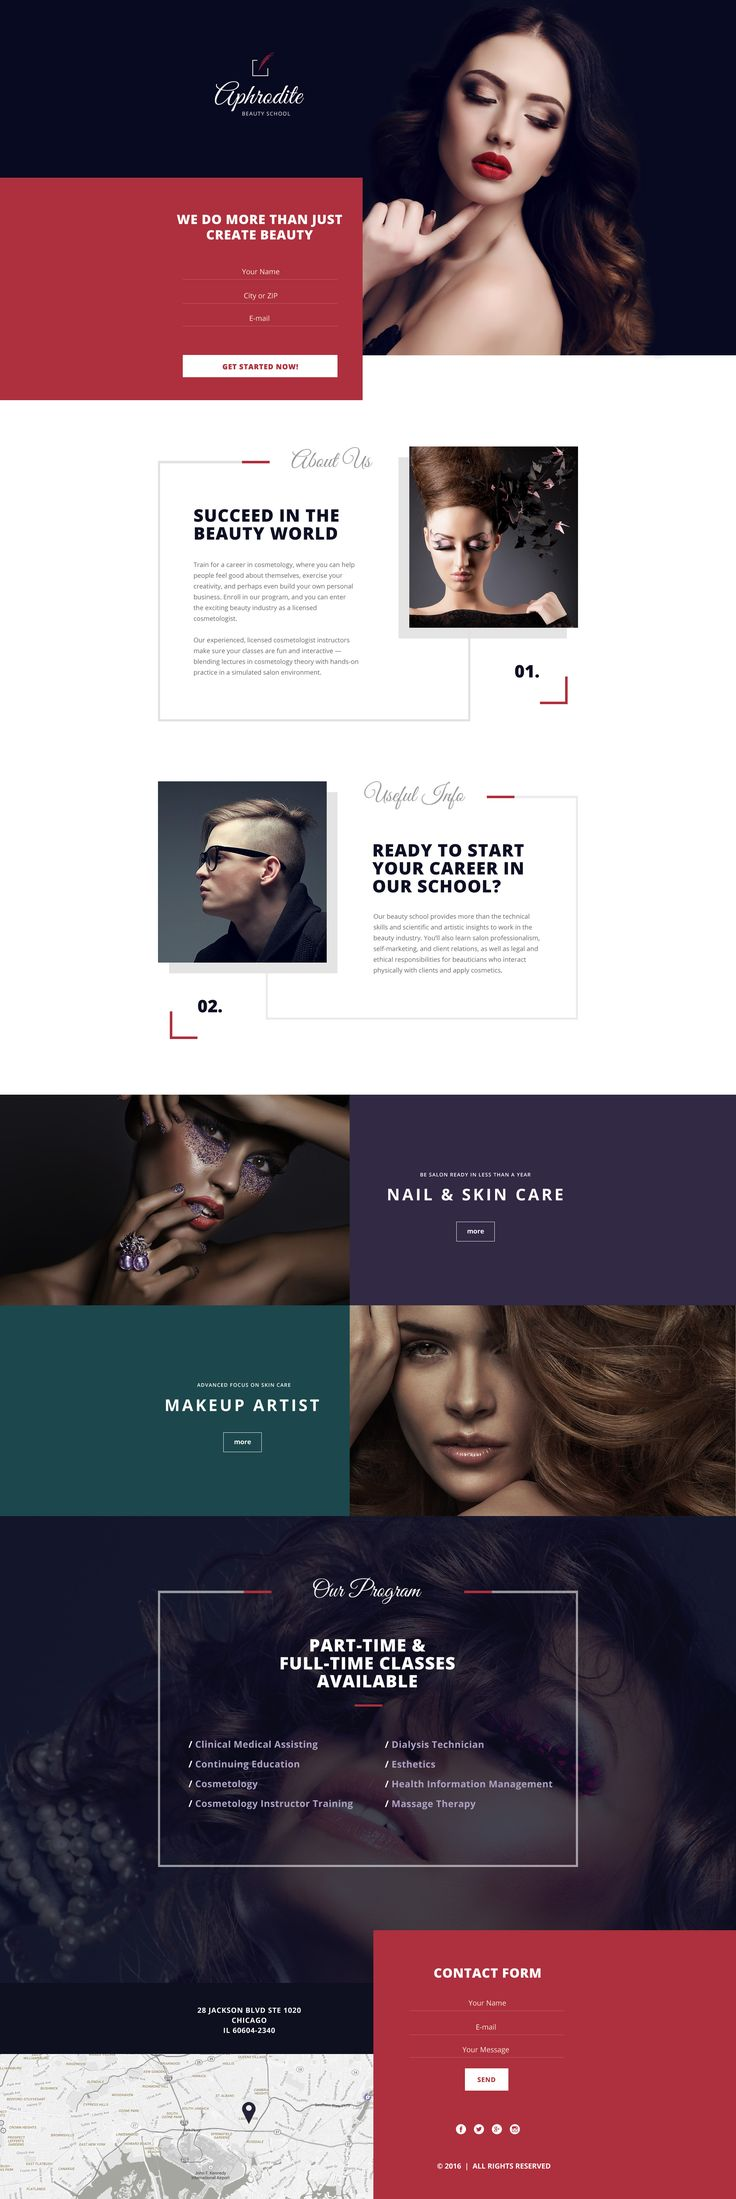 Beauty School Landing Page Template #58406